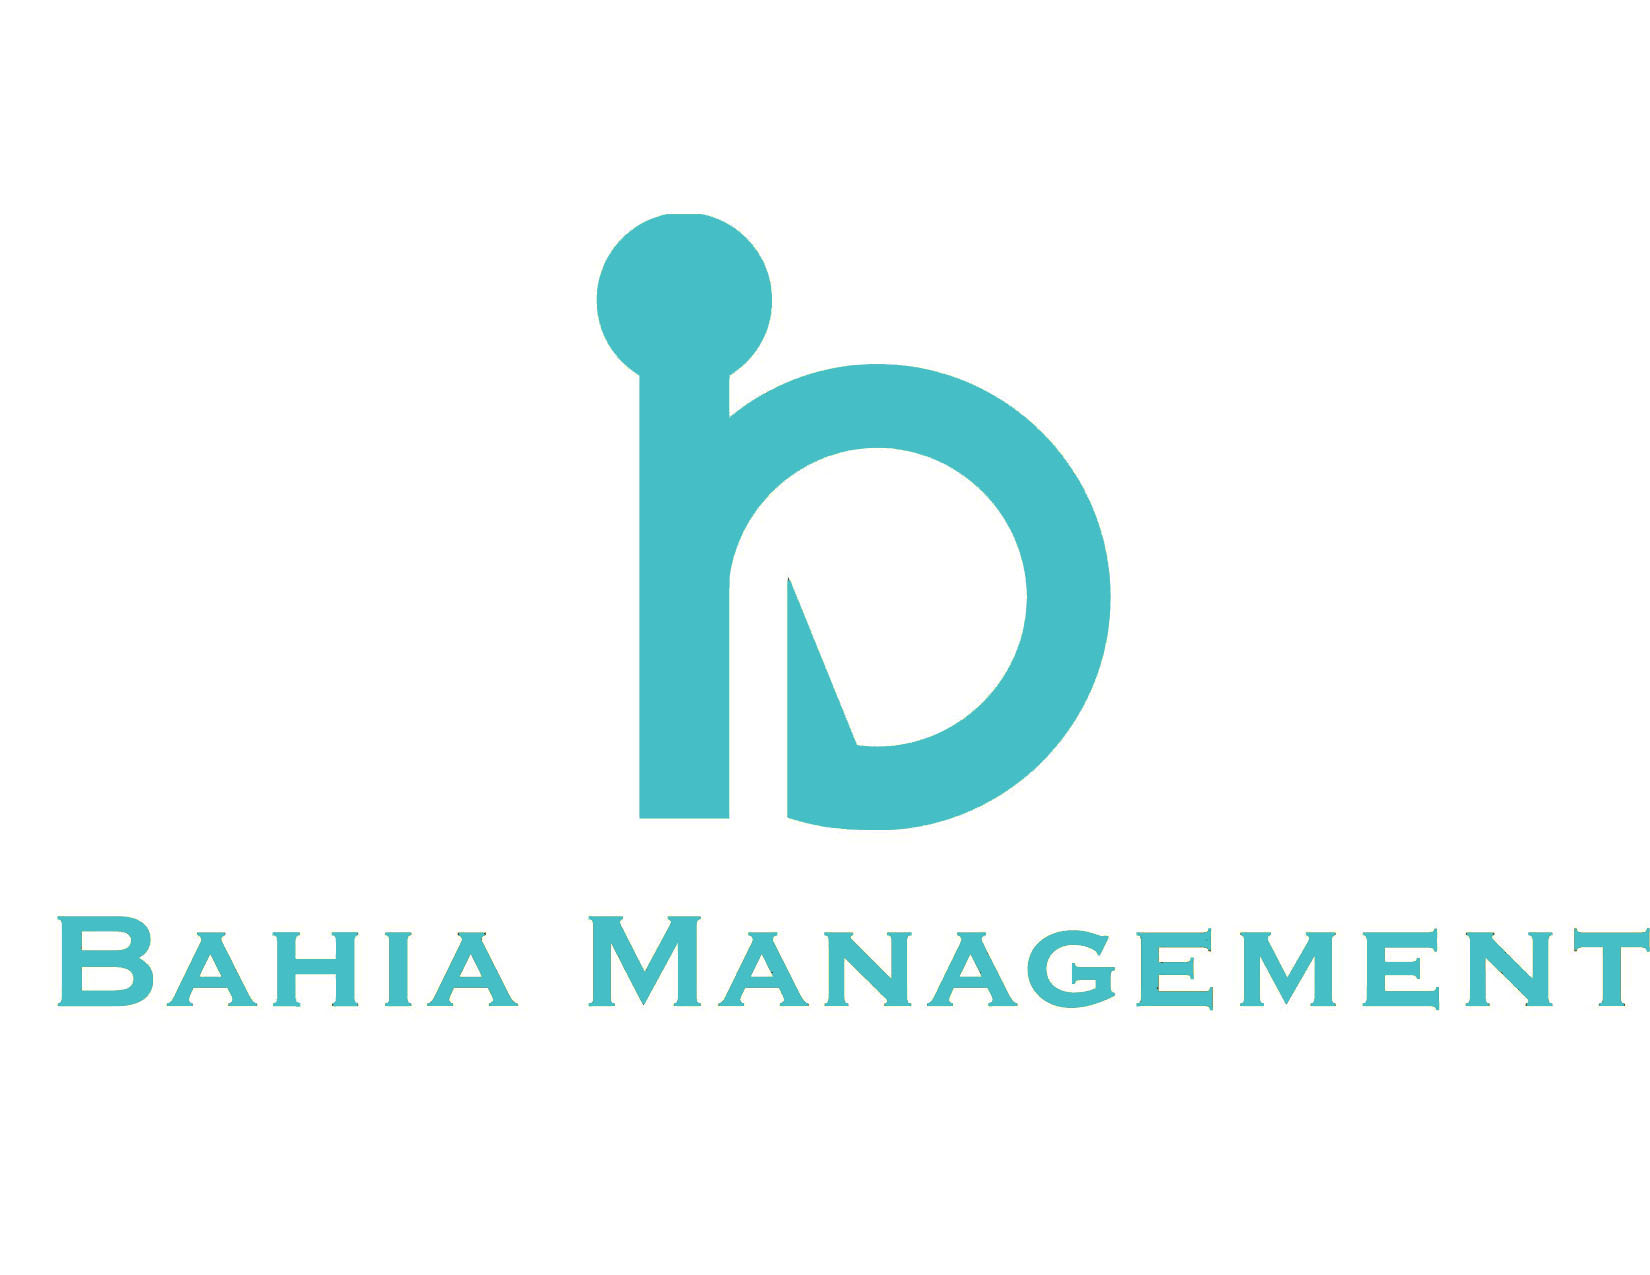 cropped-Logo-bahia-management.jpg